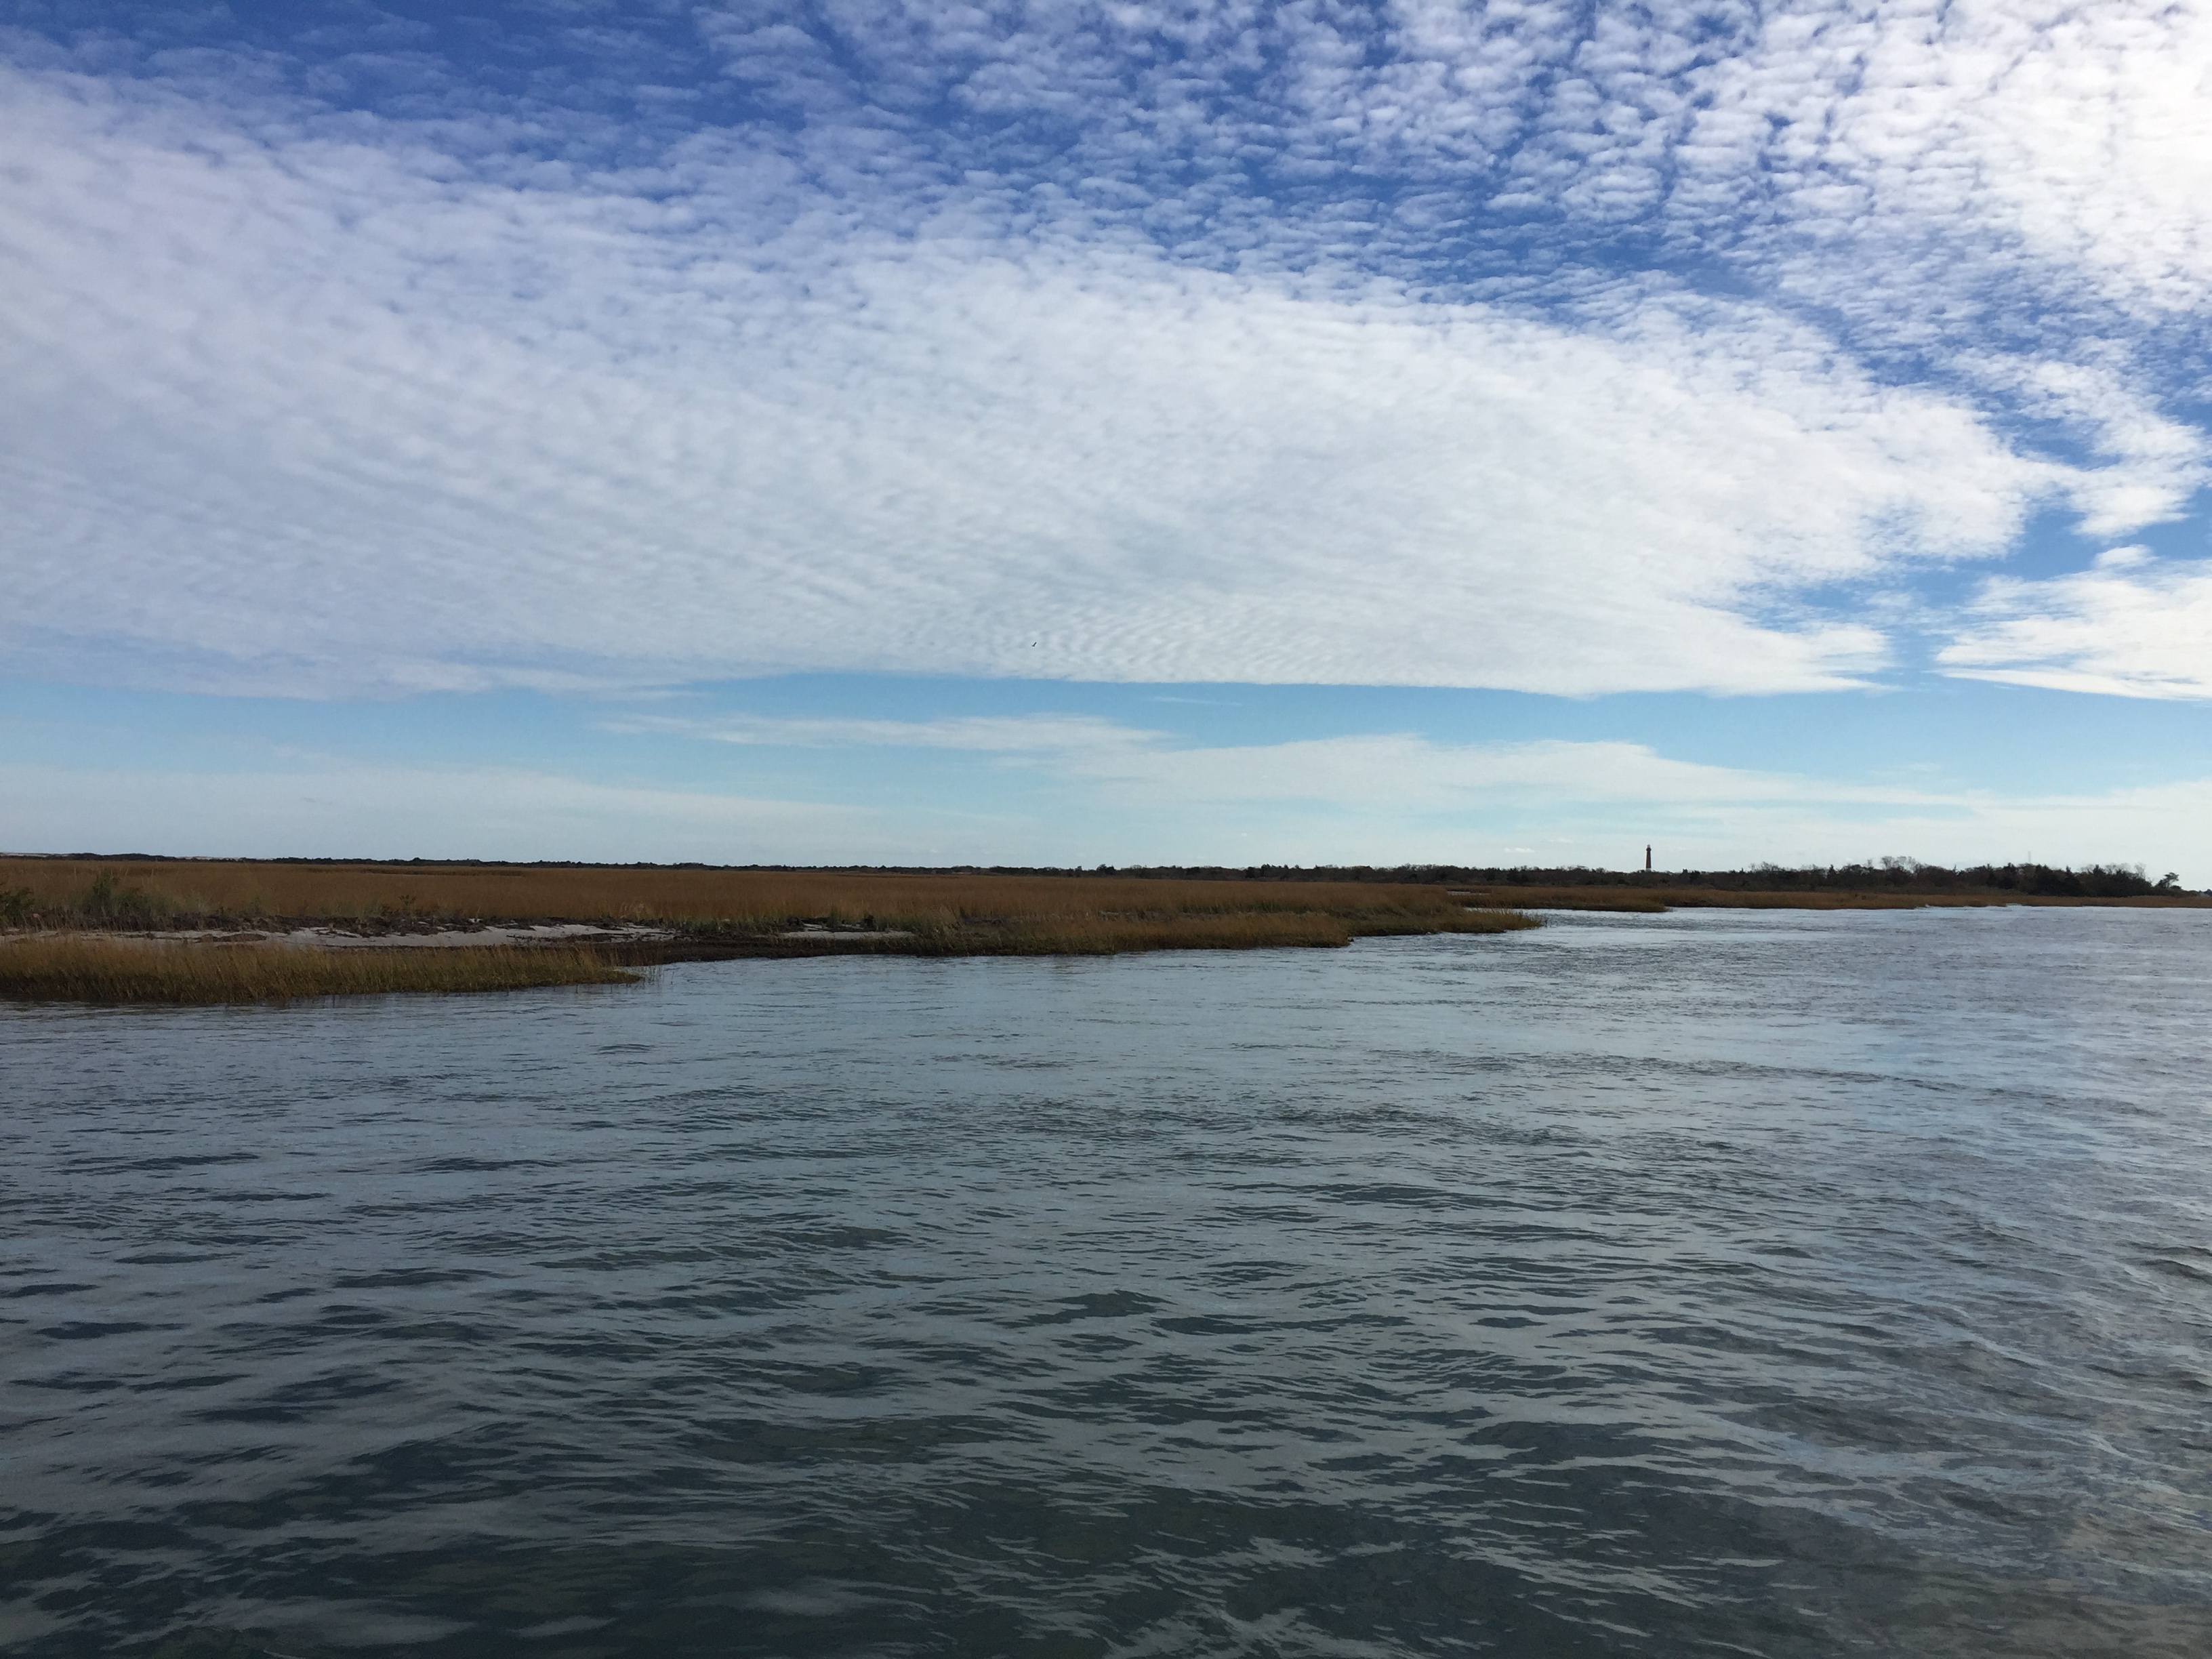 Sedge Islands, Barnegat Bay. (Photo: Daniel Nee)